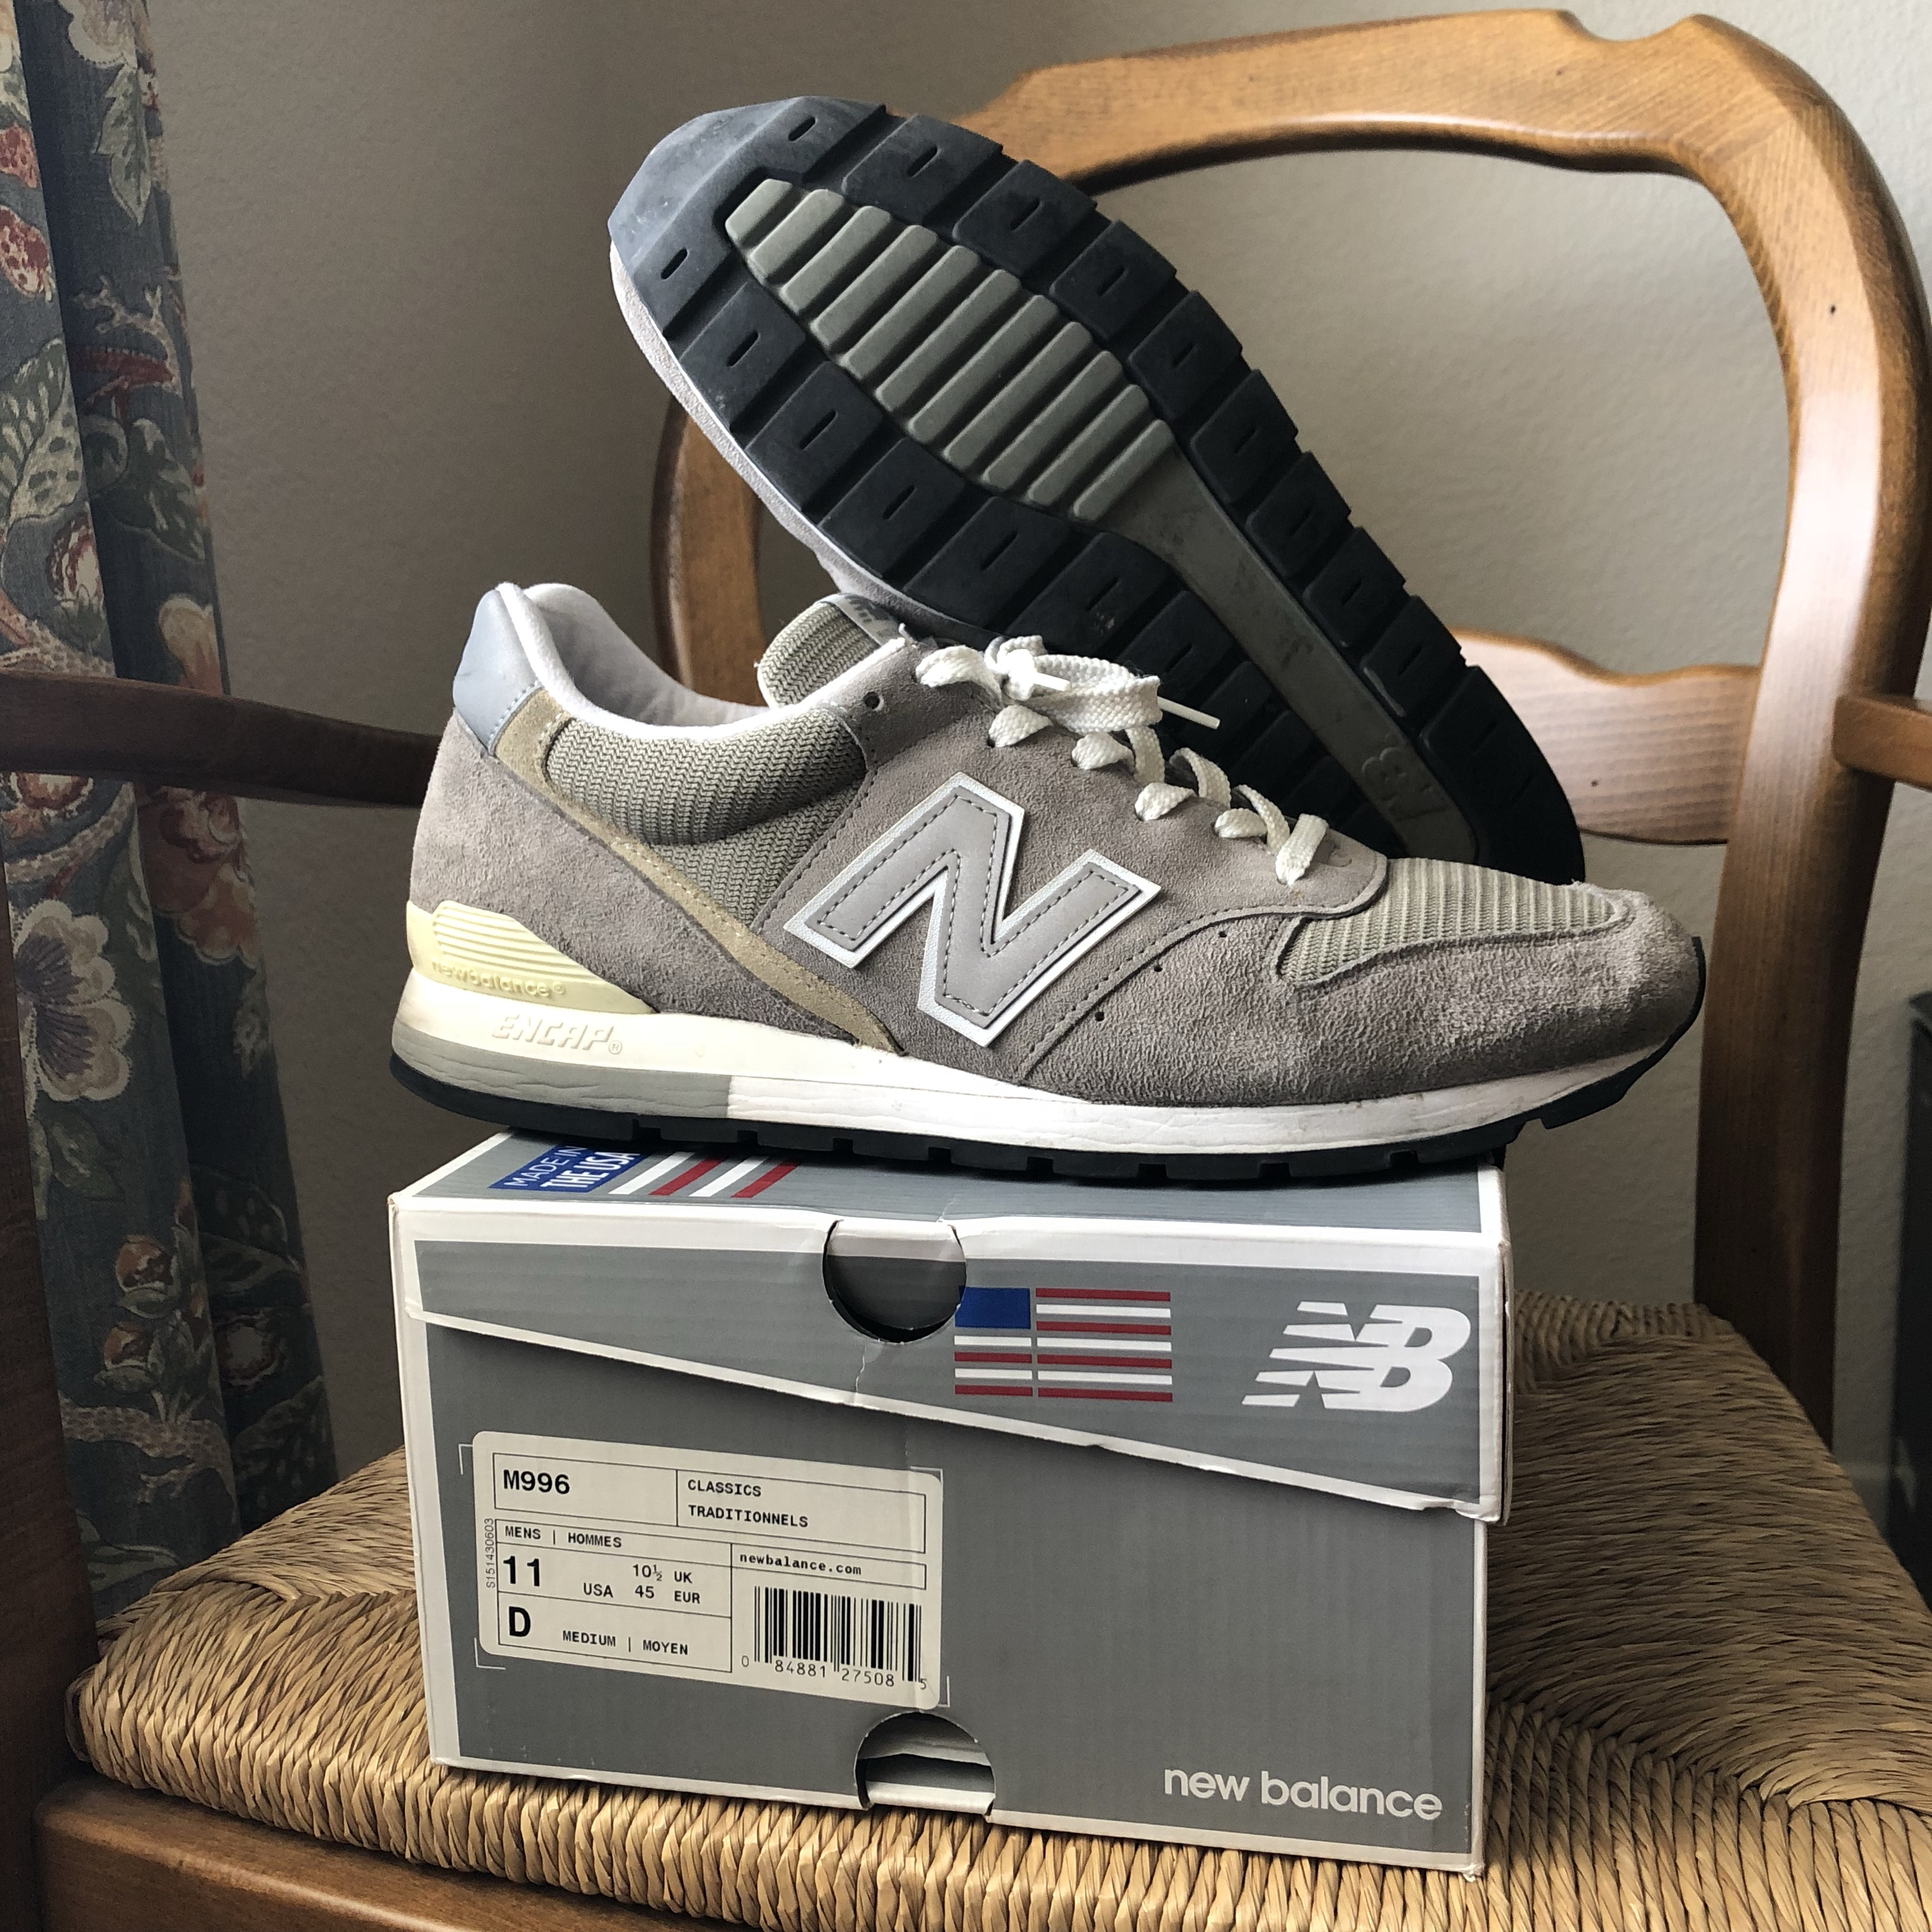 NEW BALANCE M996 Made in the USA